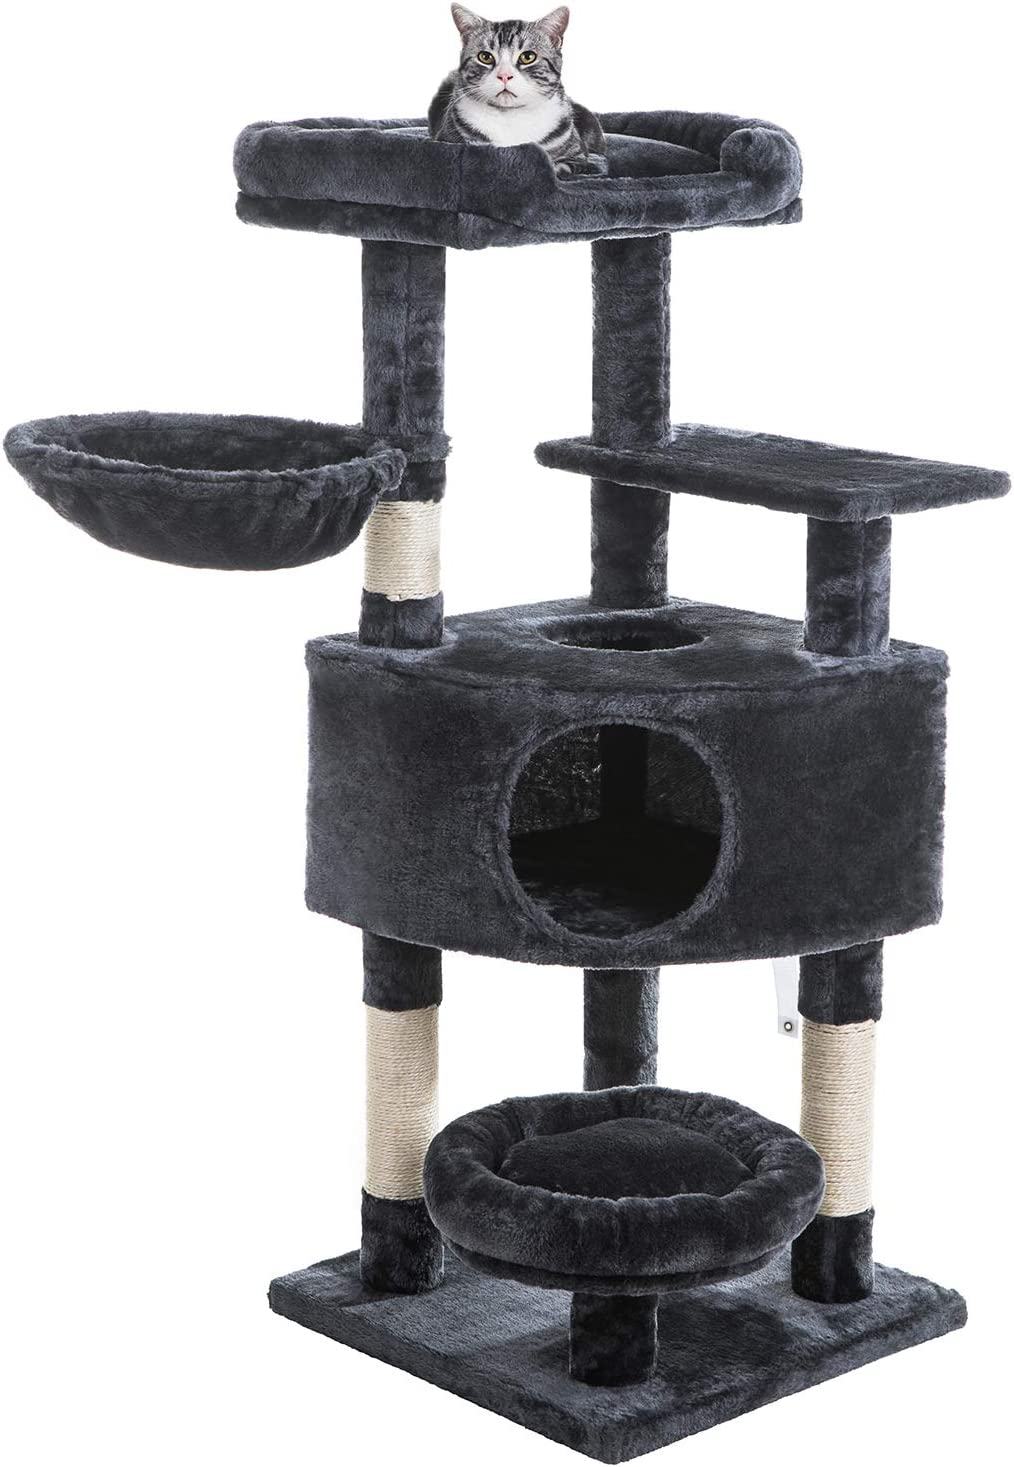 SUPERJARE Cat Tree Equipped with Spacious Condos & Plush Perches, Multi-Level Kitten Activity Tower with Scratching Posts & Basket Lounger